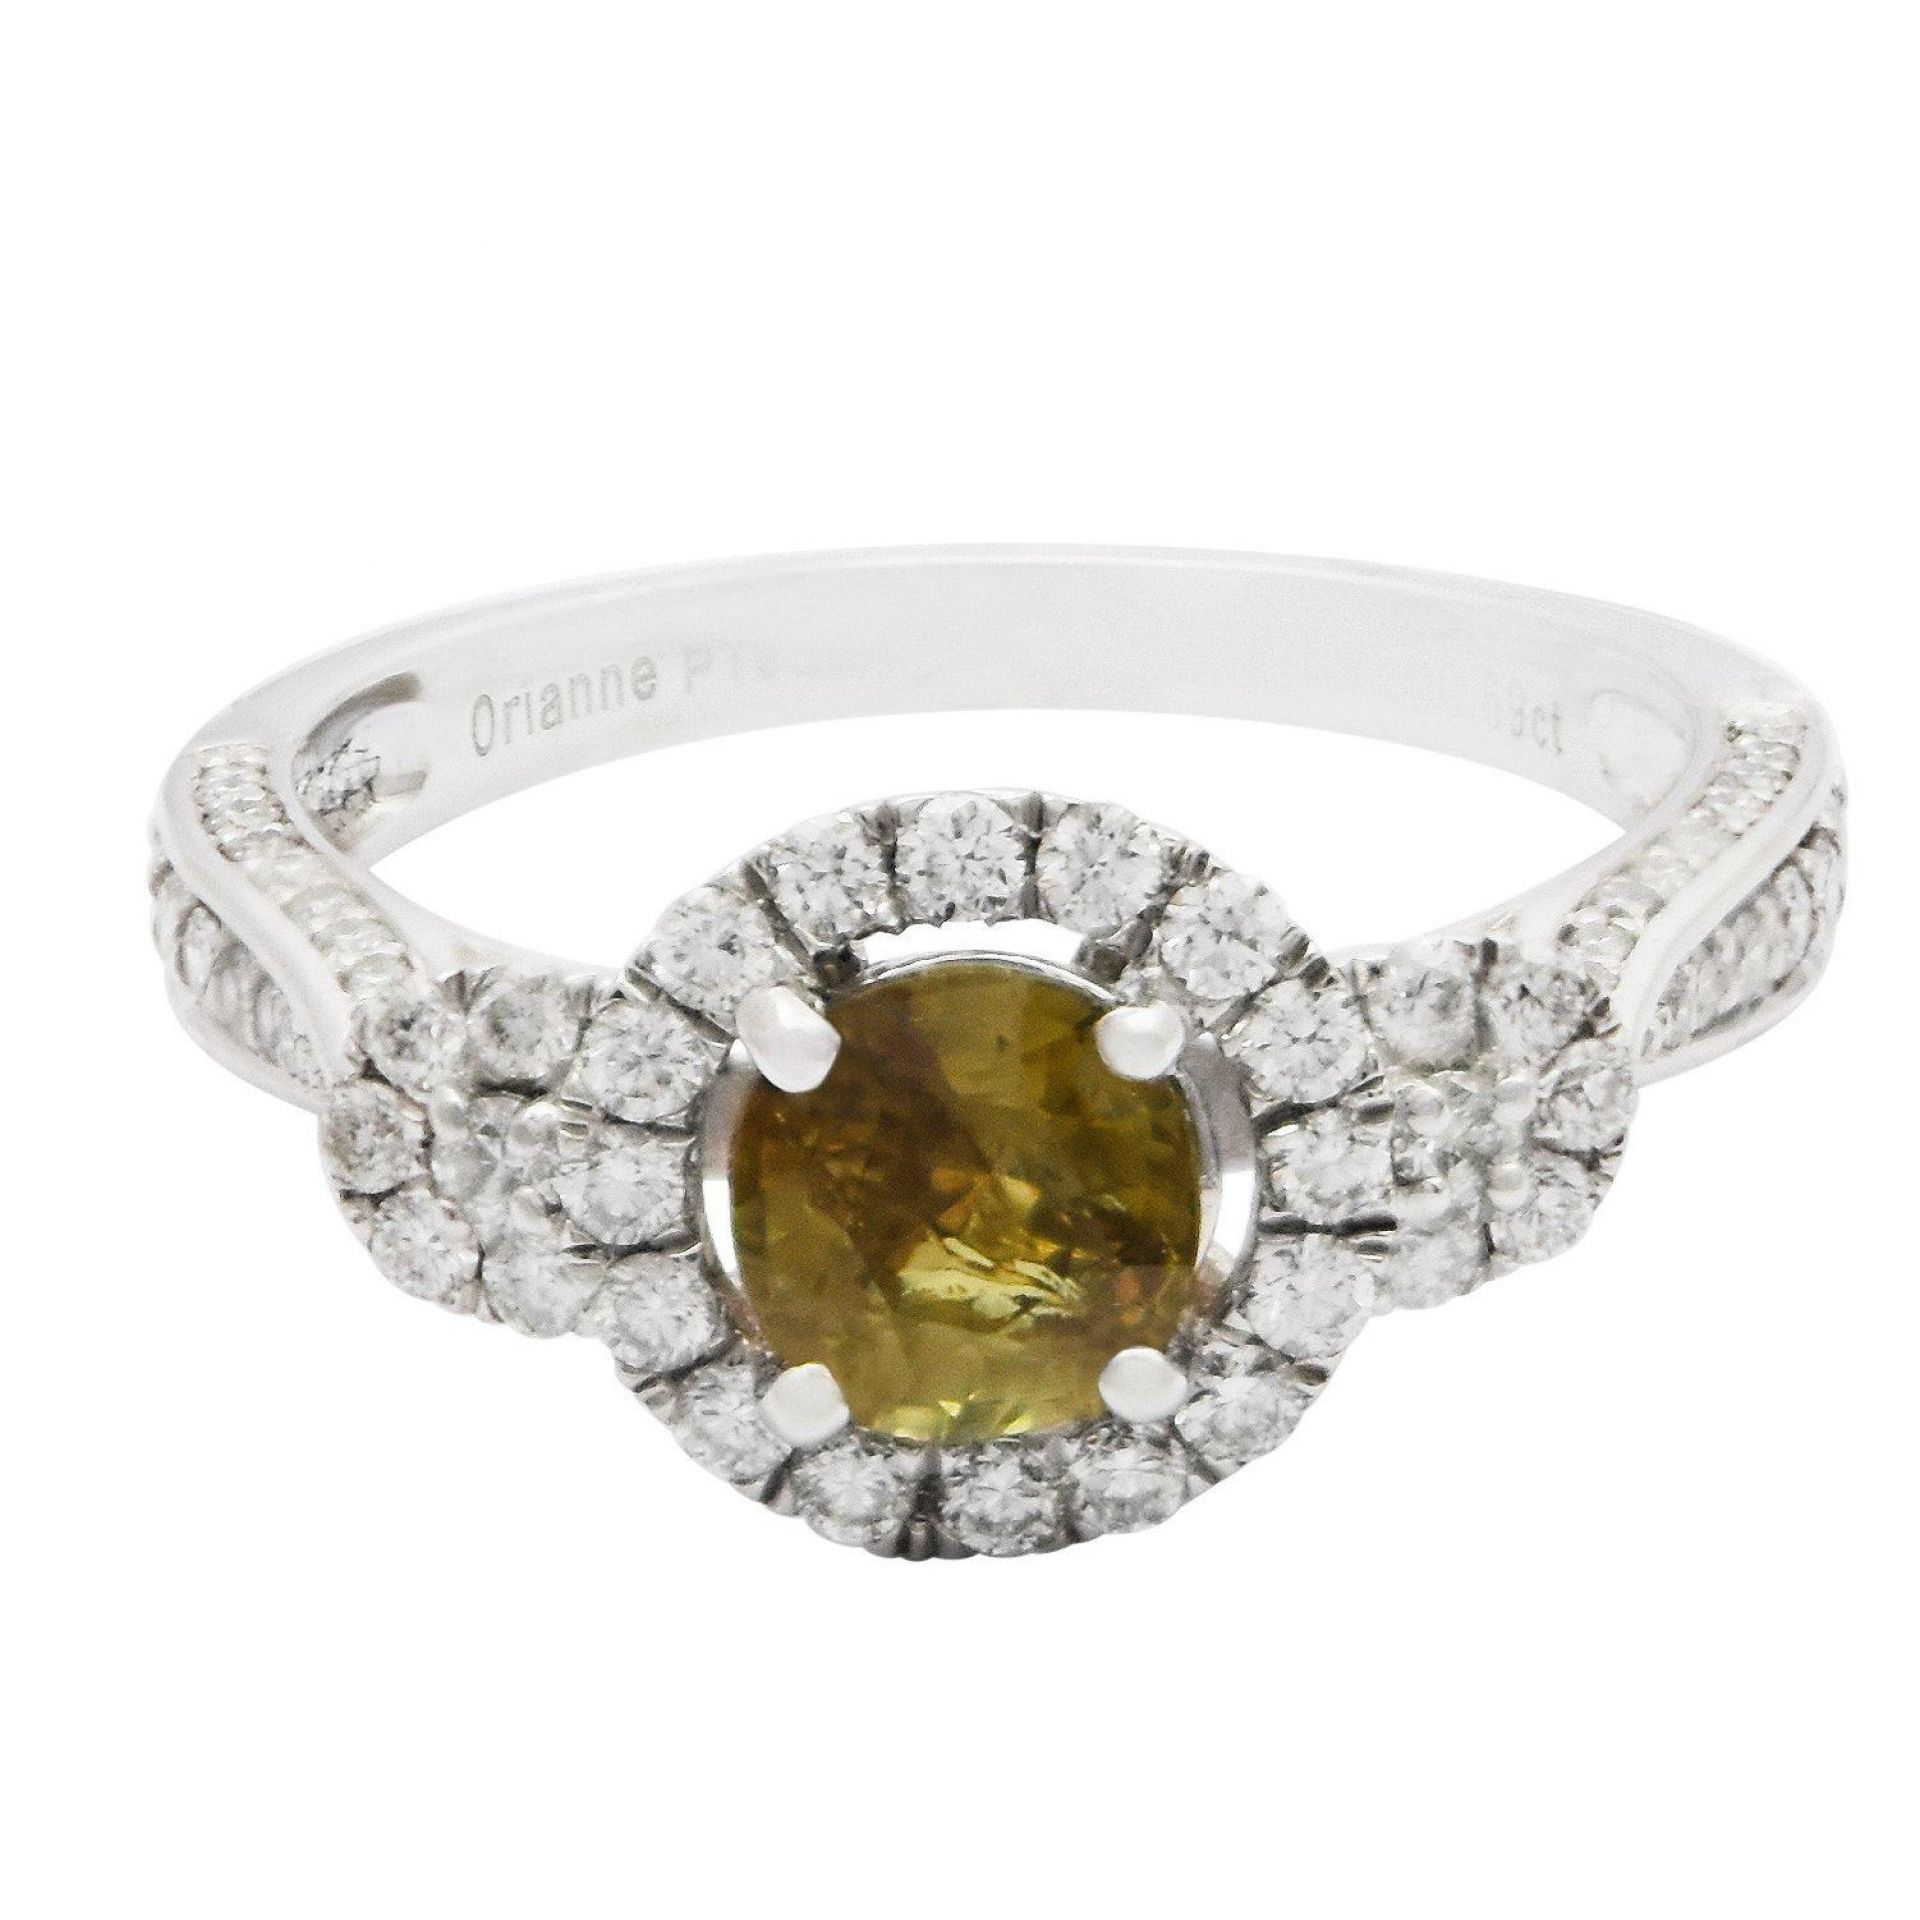 1.08ct Alexandrite and 0.69ctw Diamond Ring (GIA CERTIFIED)